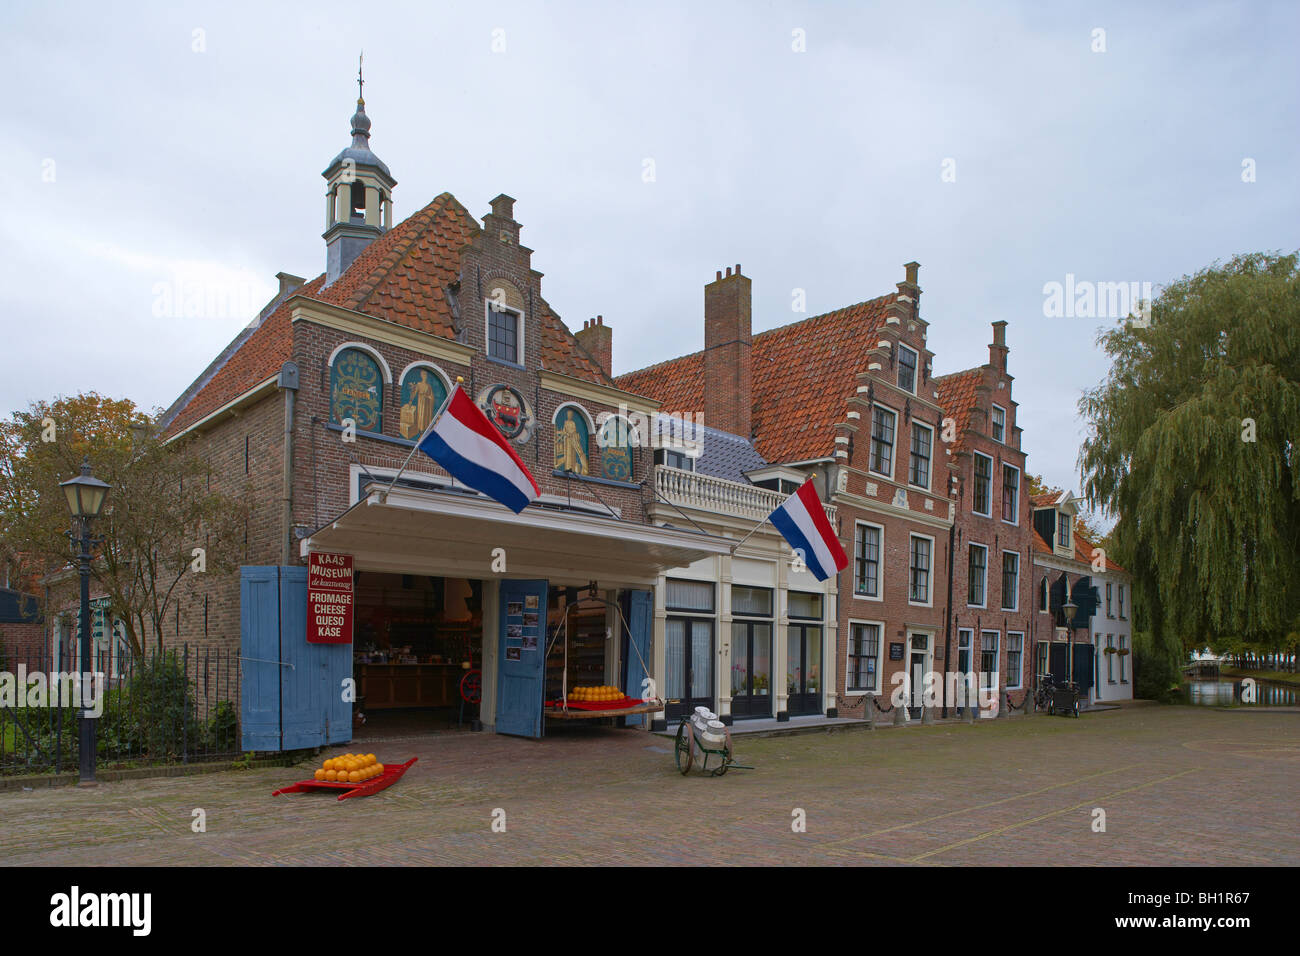 Exterior view of the Museum of Cheese under cloudy sky, Edam, Netherlands, Europe - Stock Image